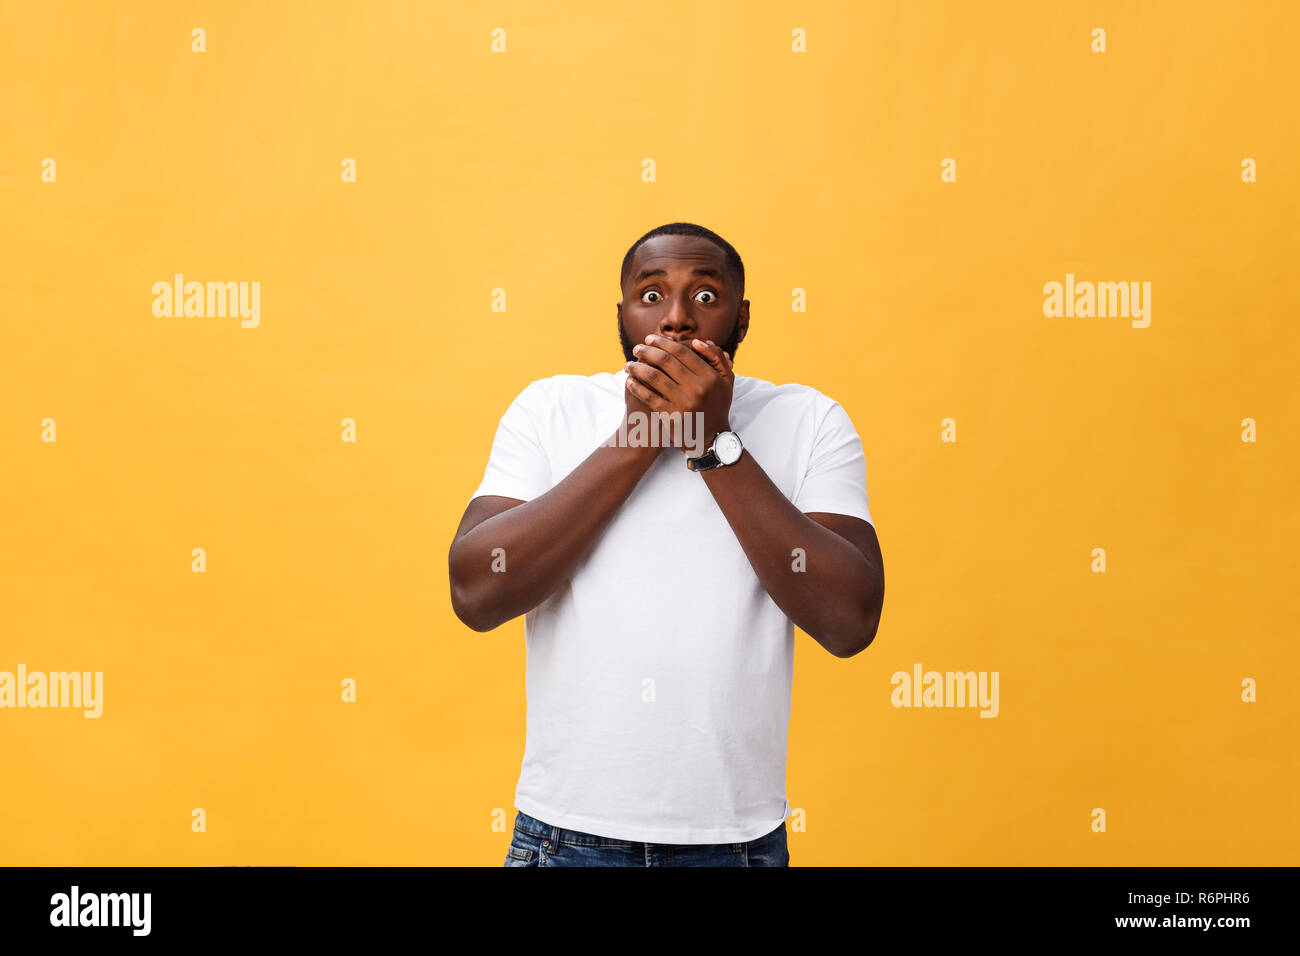 Amazed young African American hipster wearing white t-shirt holding hands in surprised gesture, keeping mouth wide open, looking shocked - Stock Image